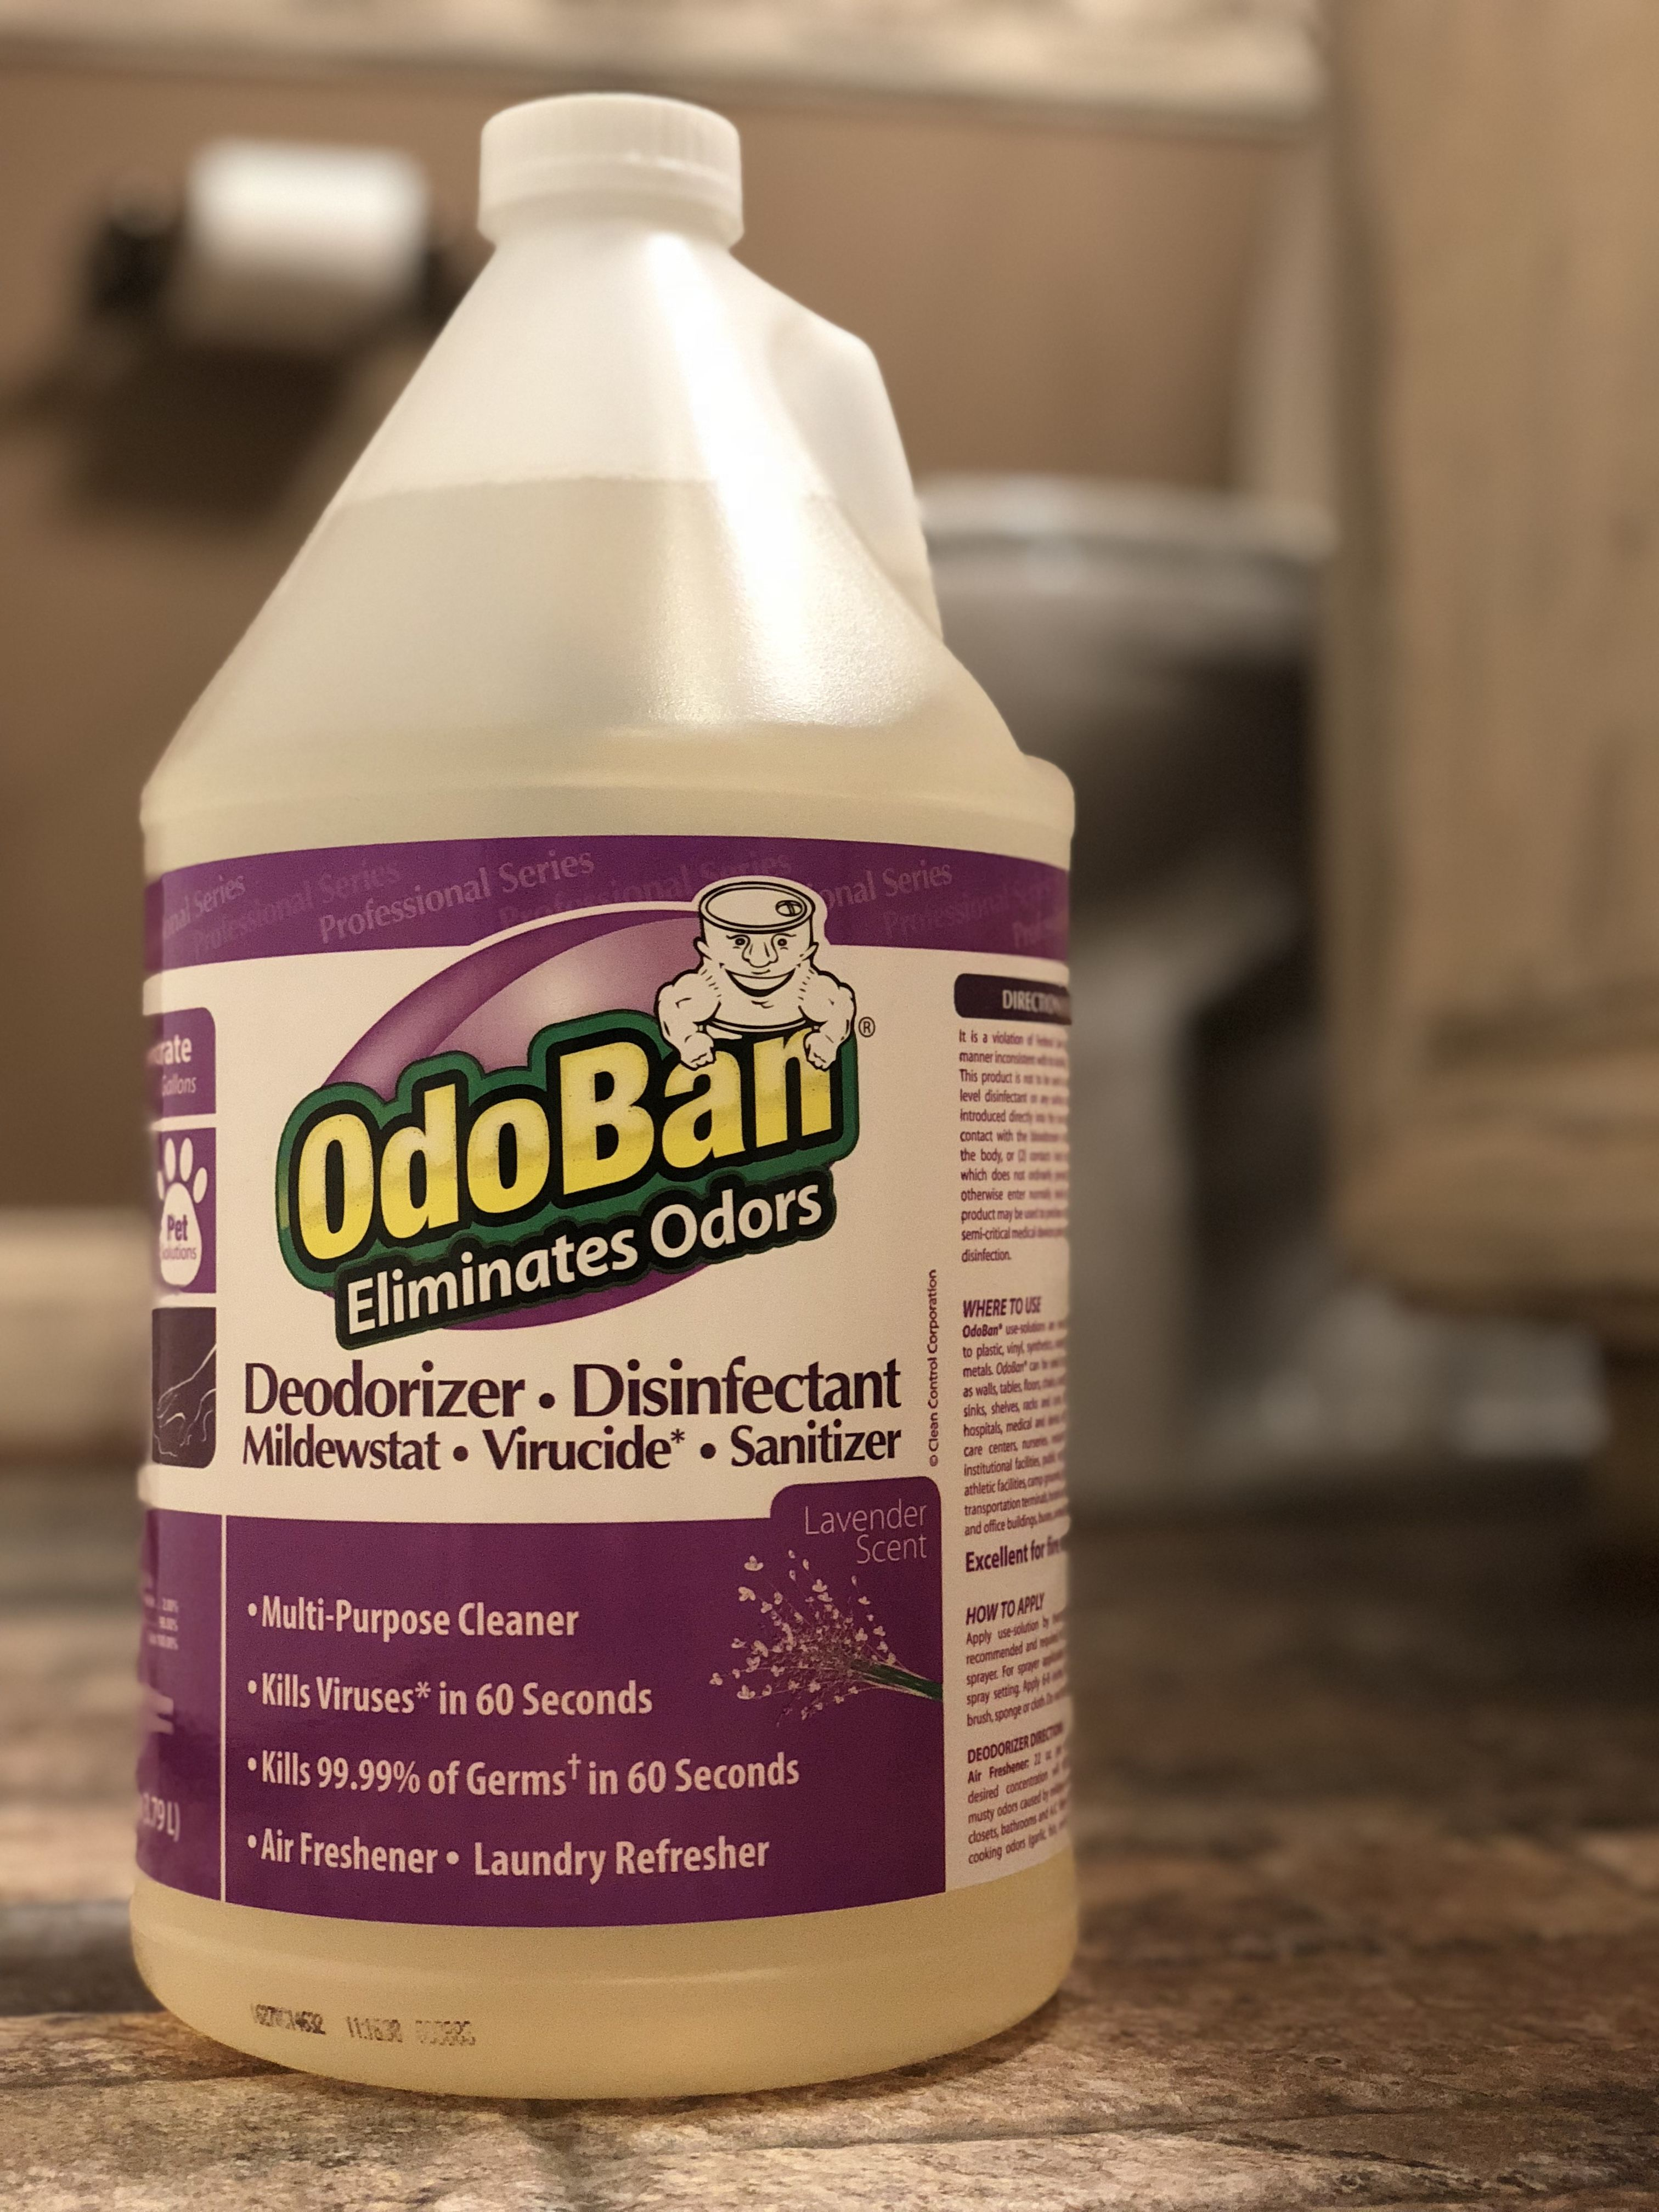 Use Odoban For Any Room In The House To Eliminate Odors And